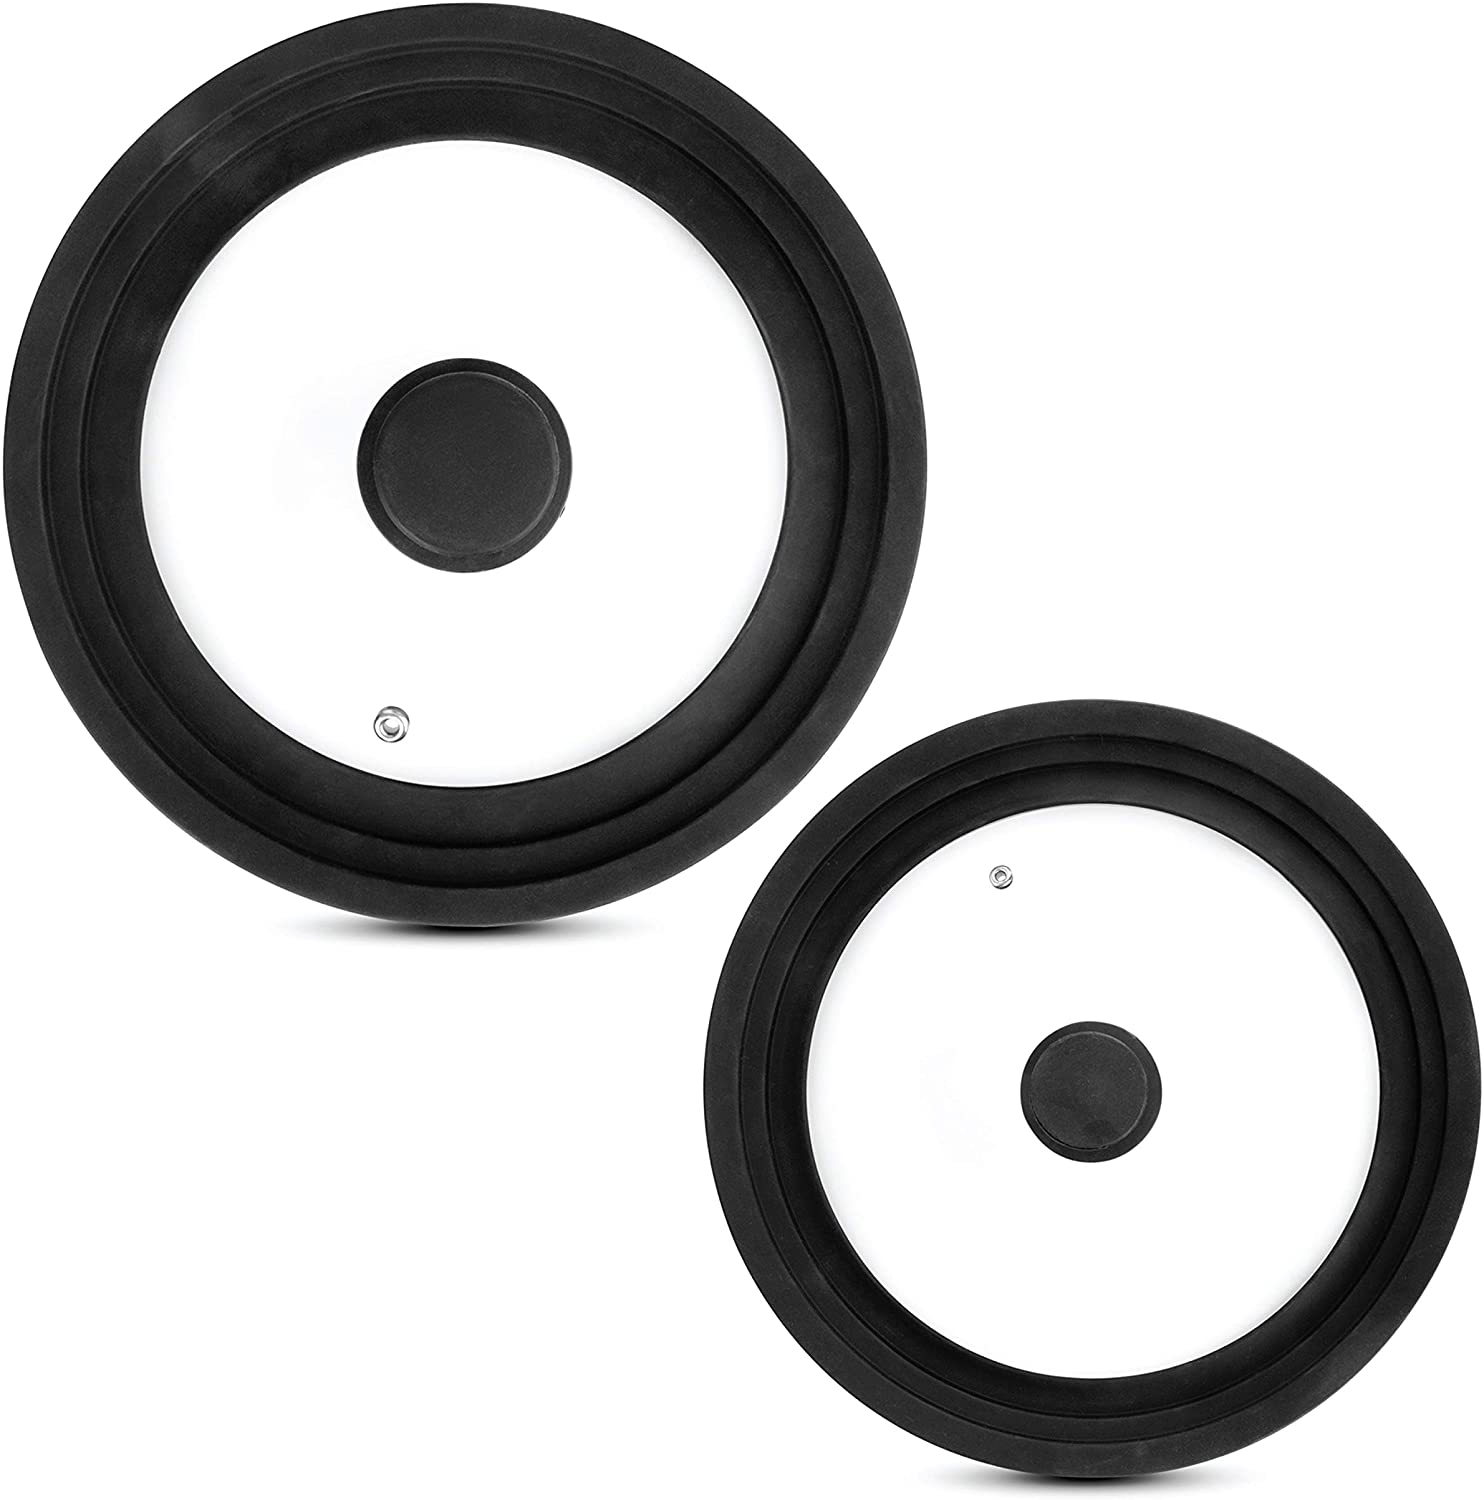 Universal Lids for Pots, Pans and Skillets (Set of 2) Silicone Smaller Lid Fits All 7 to 9 Inch Pots and Pans - Silicone Larger Lid Fits 10 to 12 Inch Cookware Replacement Lids (Black) : Home & Kitchen